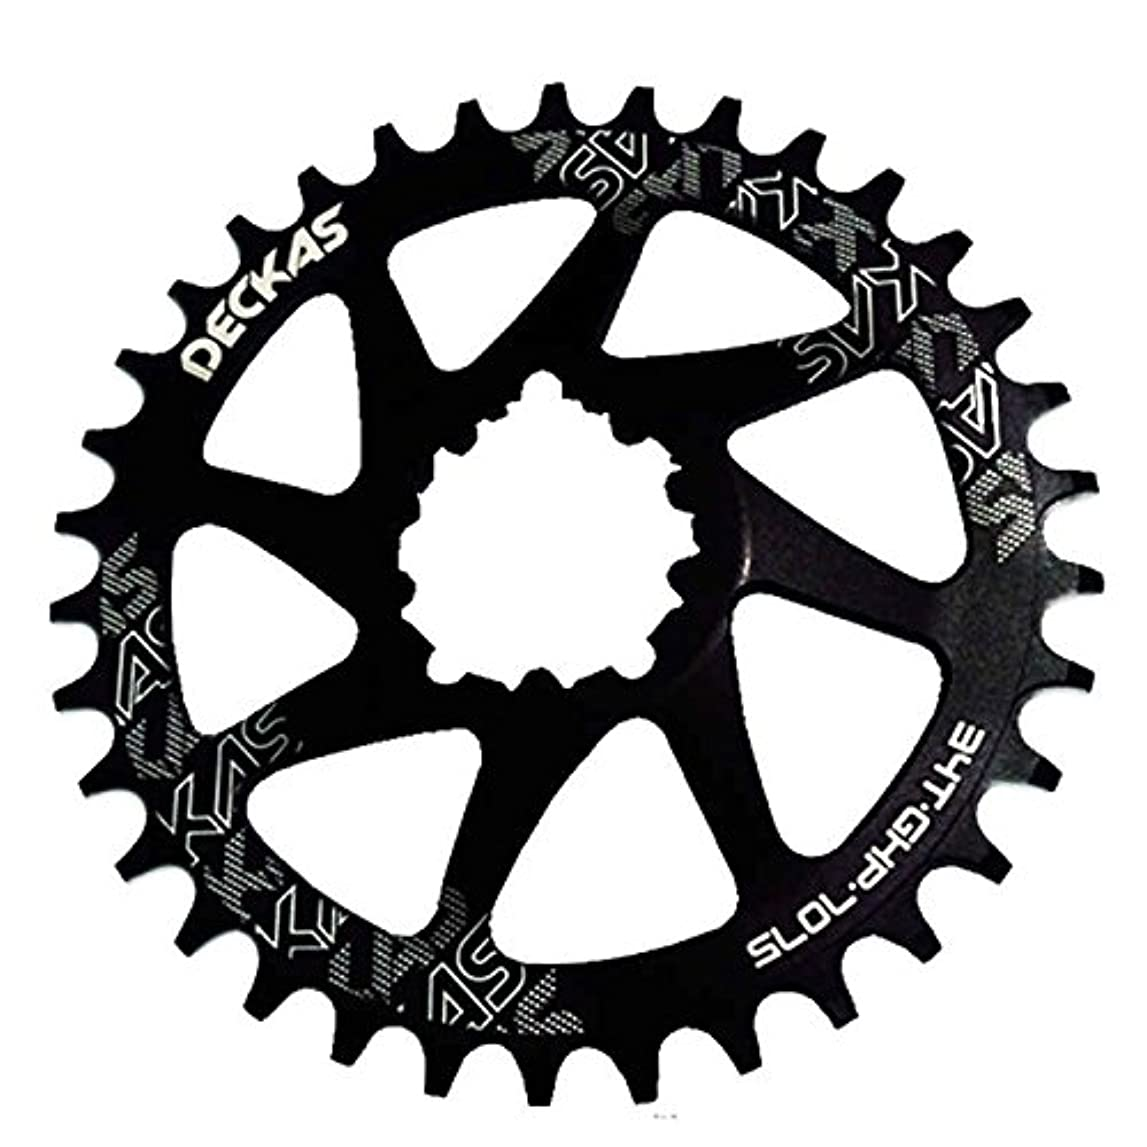 ポジティブ渇き励起Propenary - GXP bicycle crankset Al 7075 CNC32T 34T Narrow Wide Chainring Chainwheel for Sram XX1 XO1 X1 GX XO X9 crankset bicycle parts [ 34T Black ]